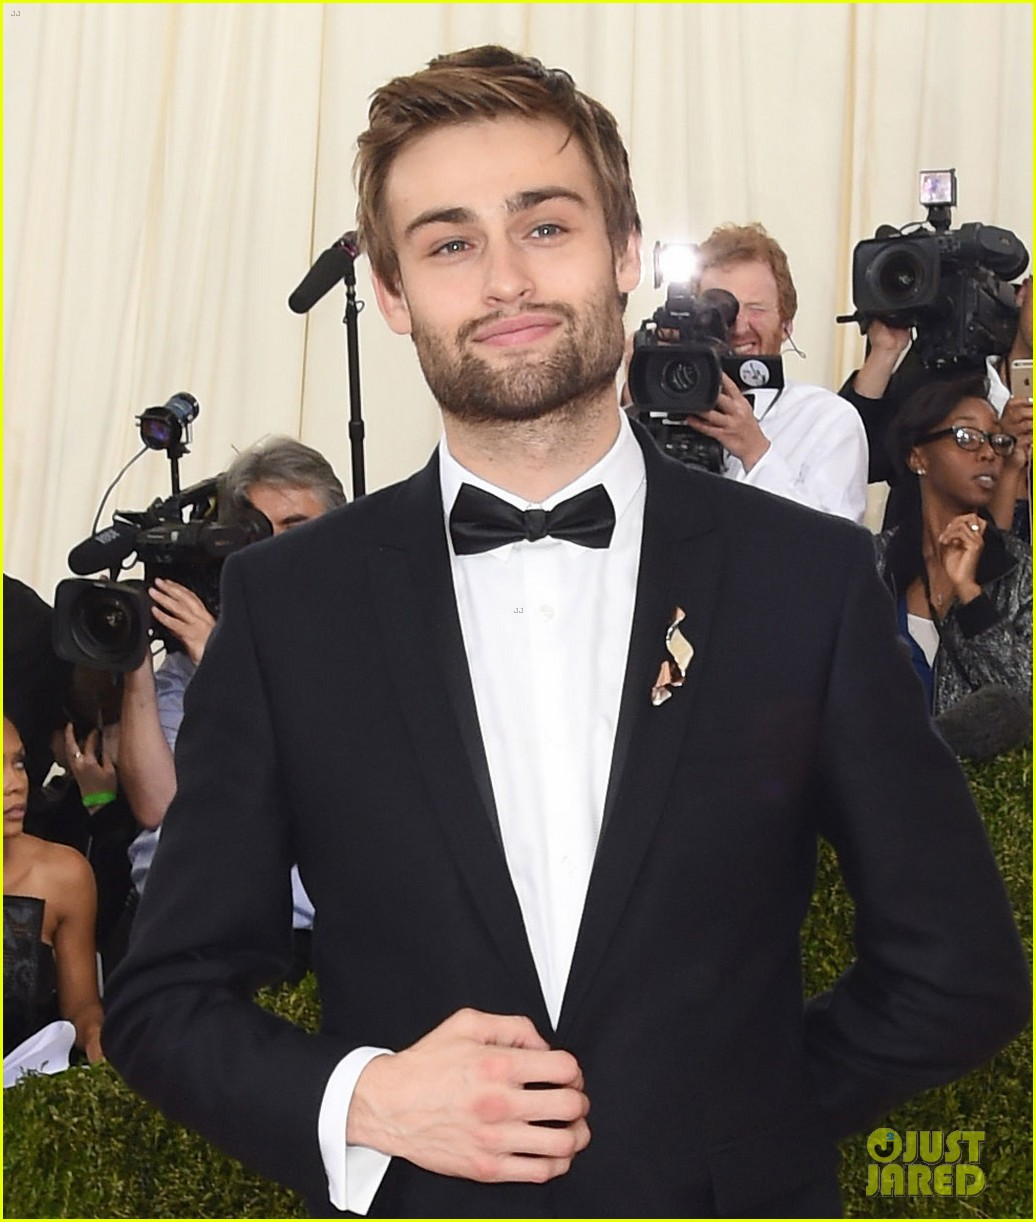 Image result for douglas booth met gala 2016 outfit